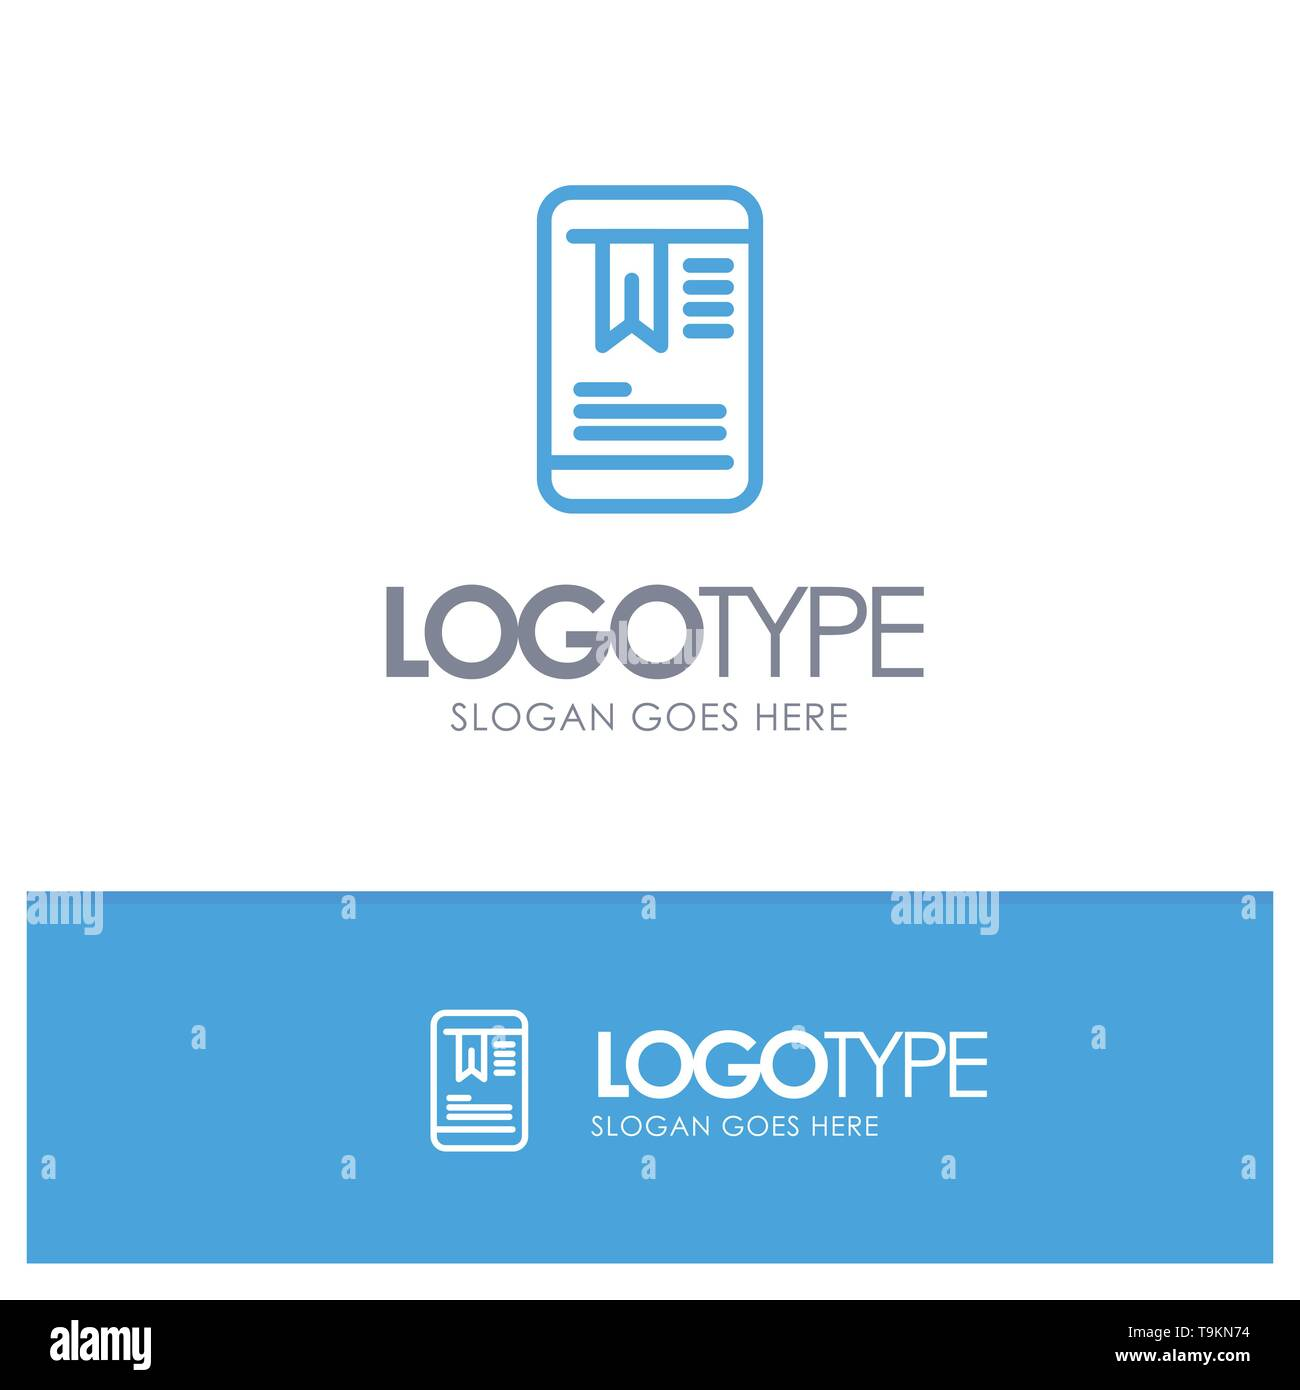 Mobile, Tag, OnEducation Blue outLine Logo with place for tagline - Stock Image